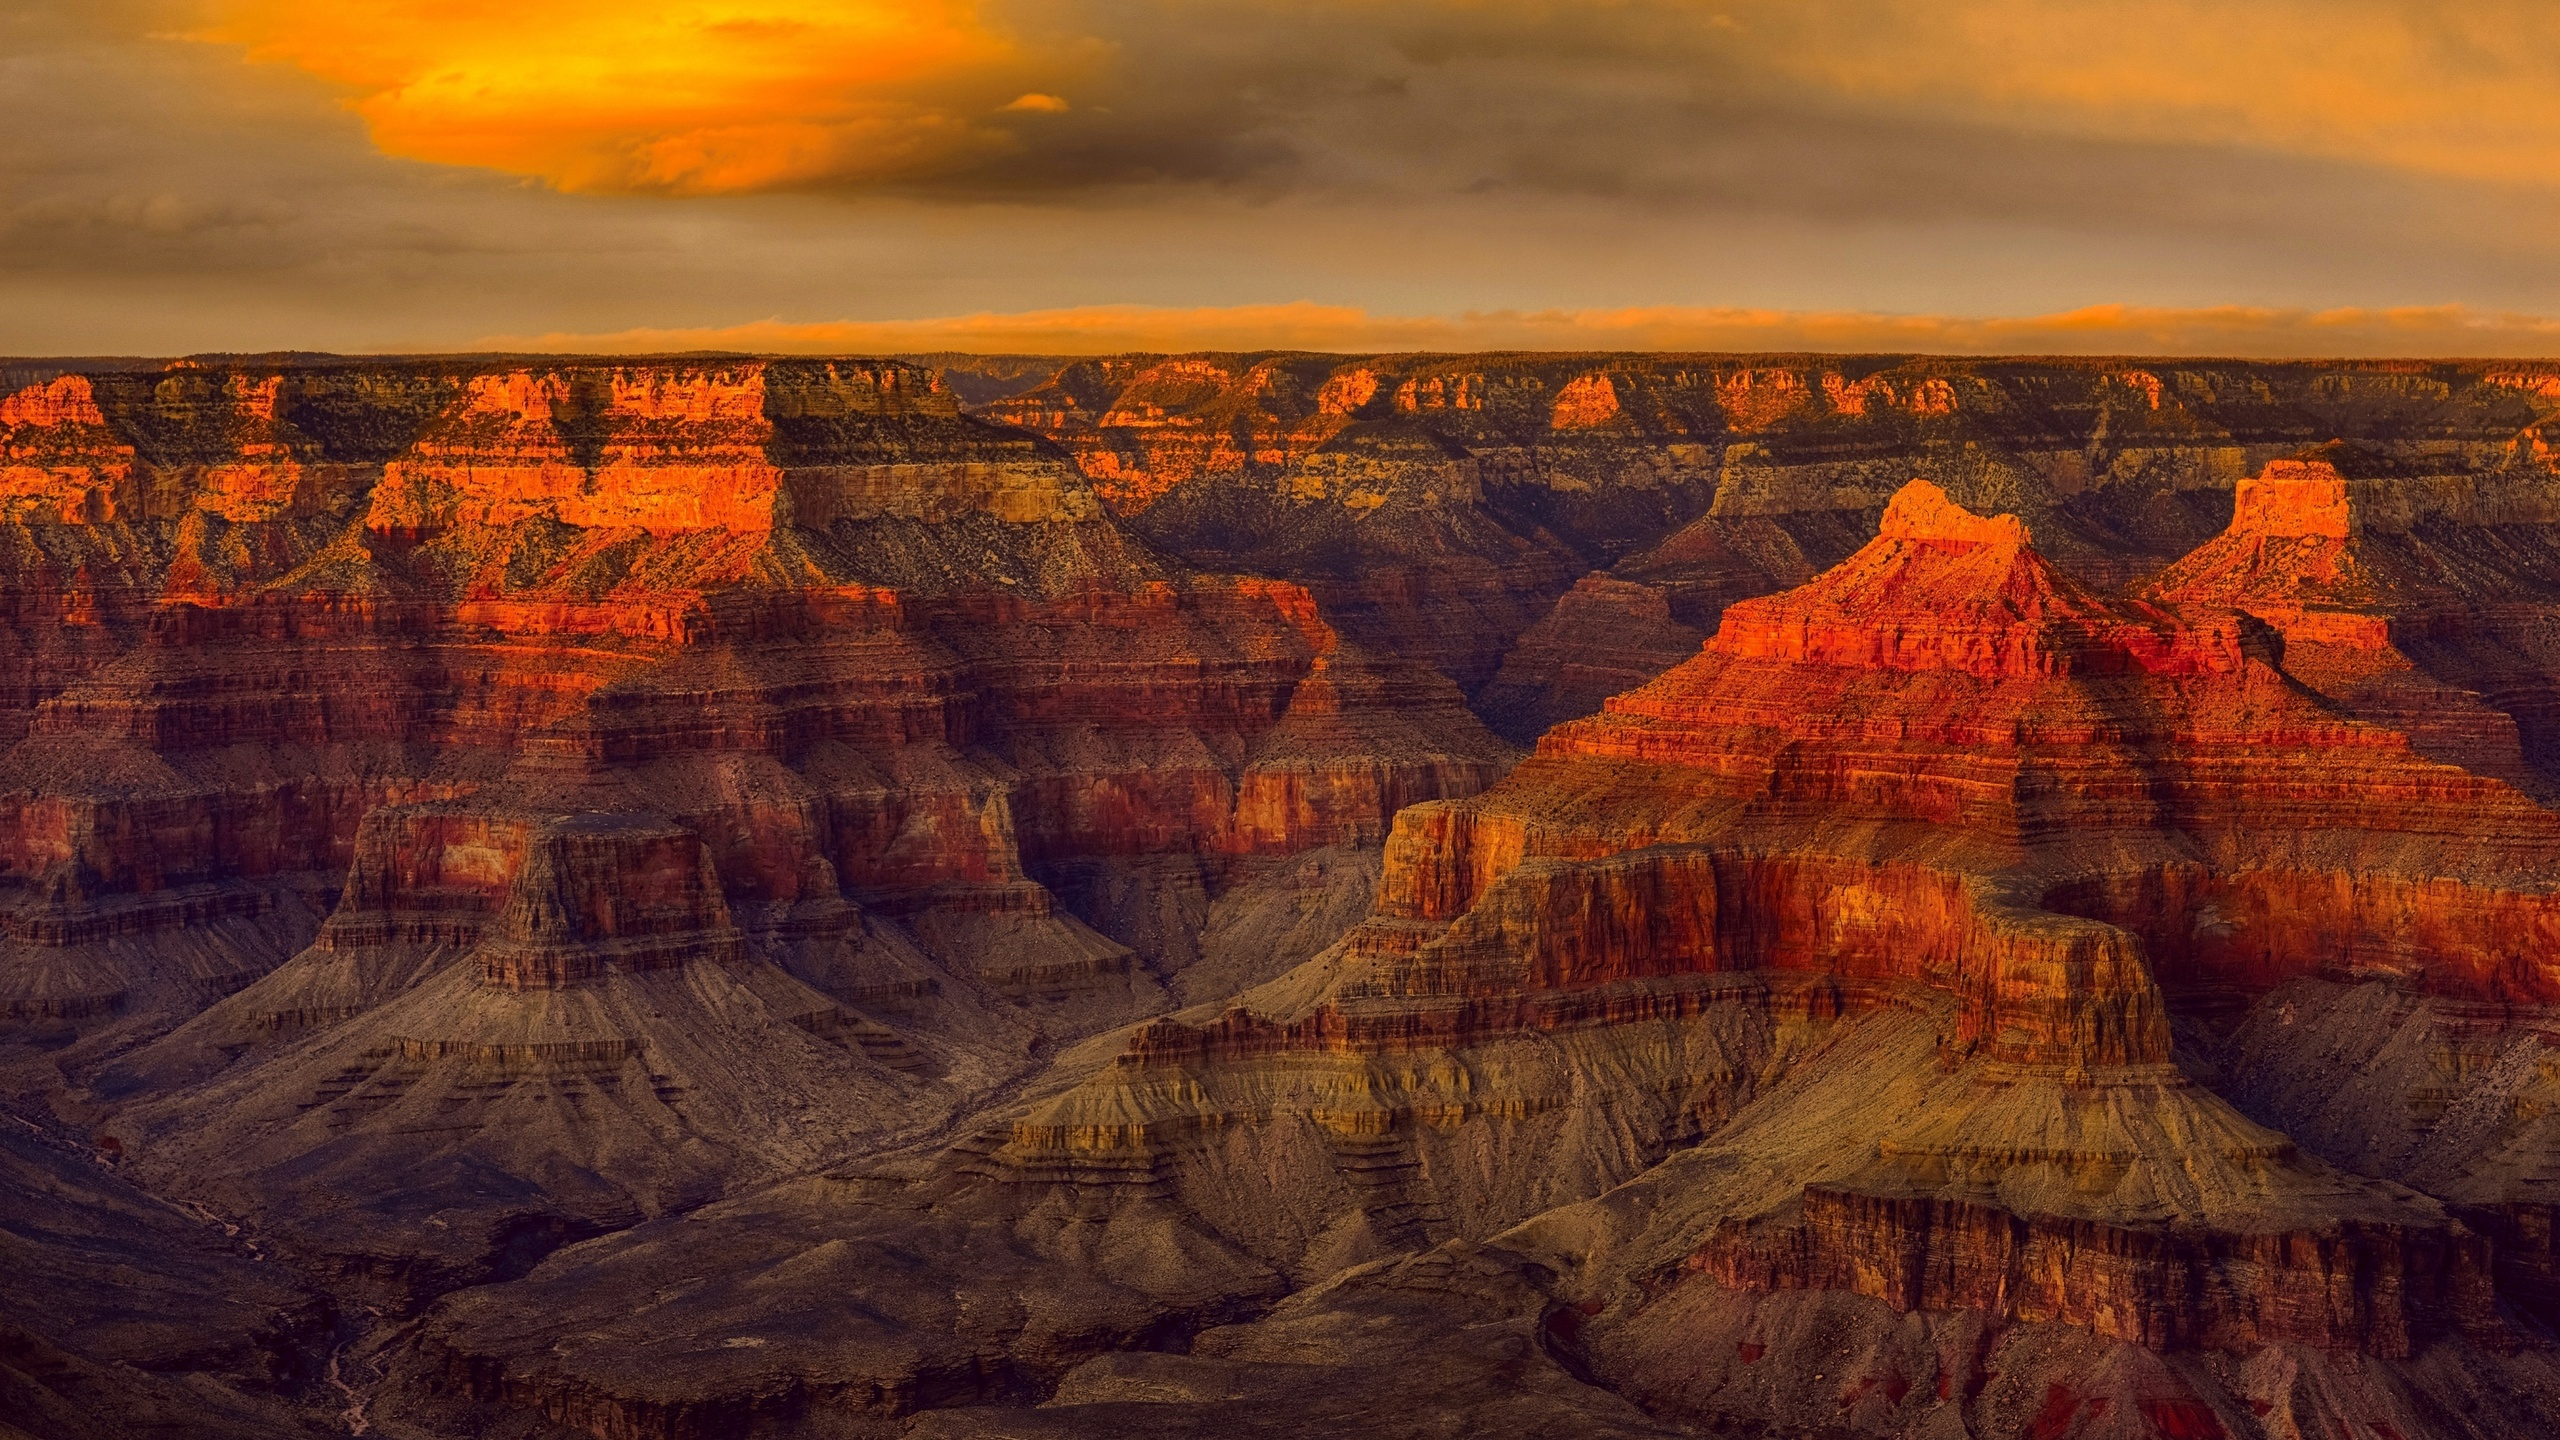 grand canyon national park, evening, rocks, sunset, red rocks, mountain landscape, colorado river, arizona